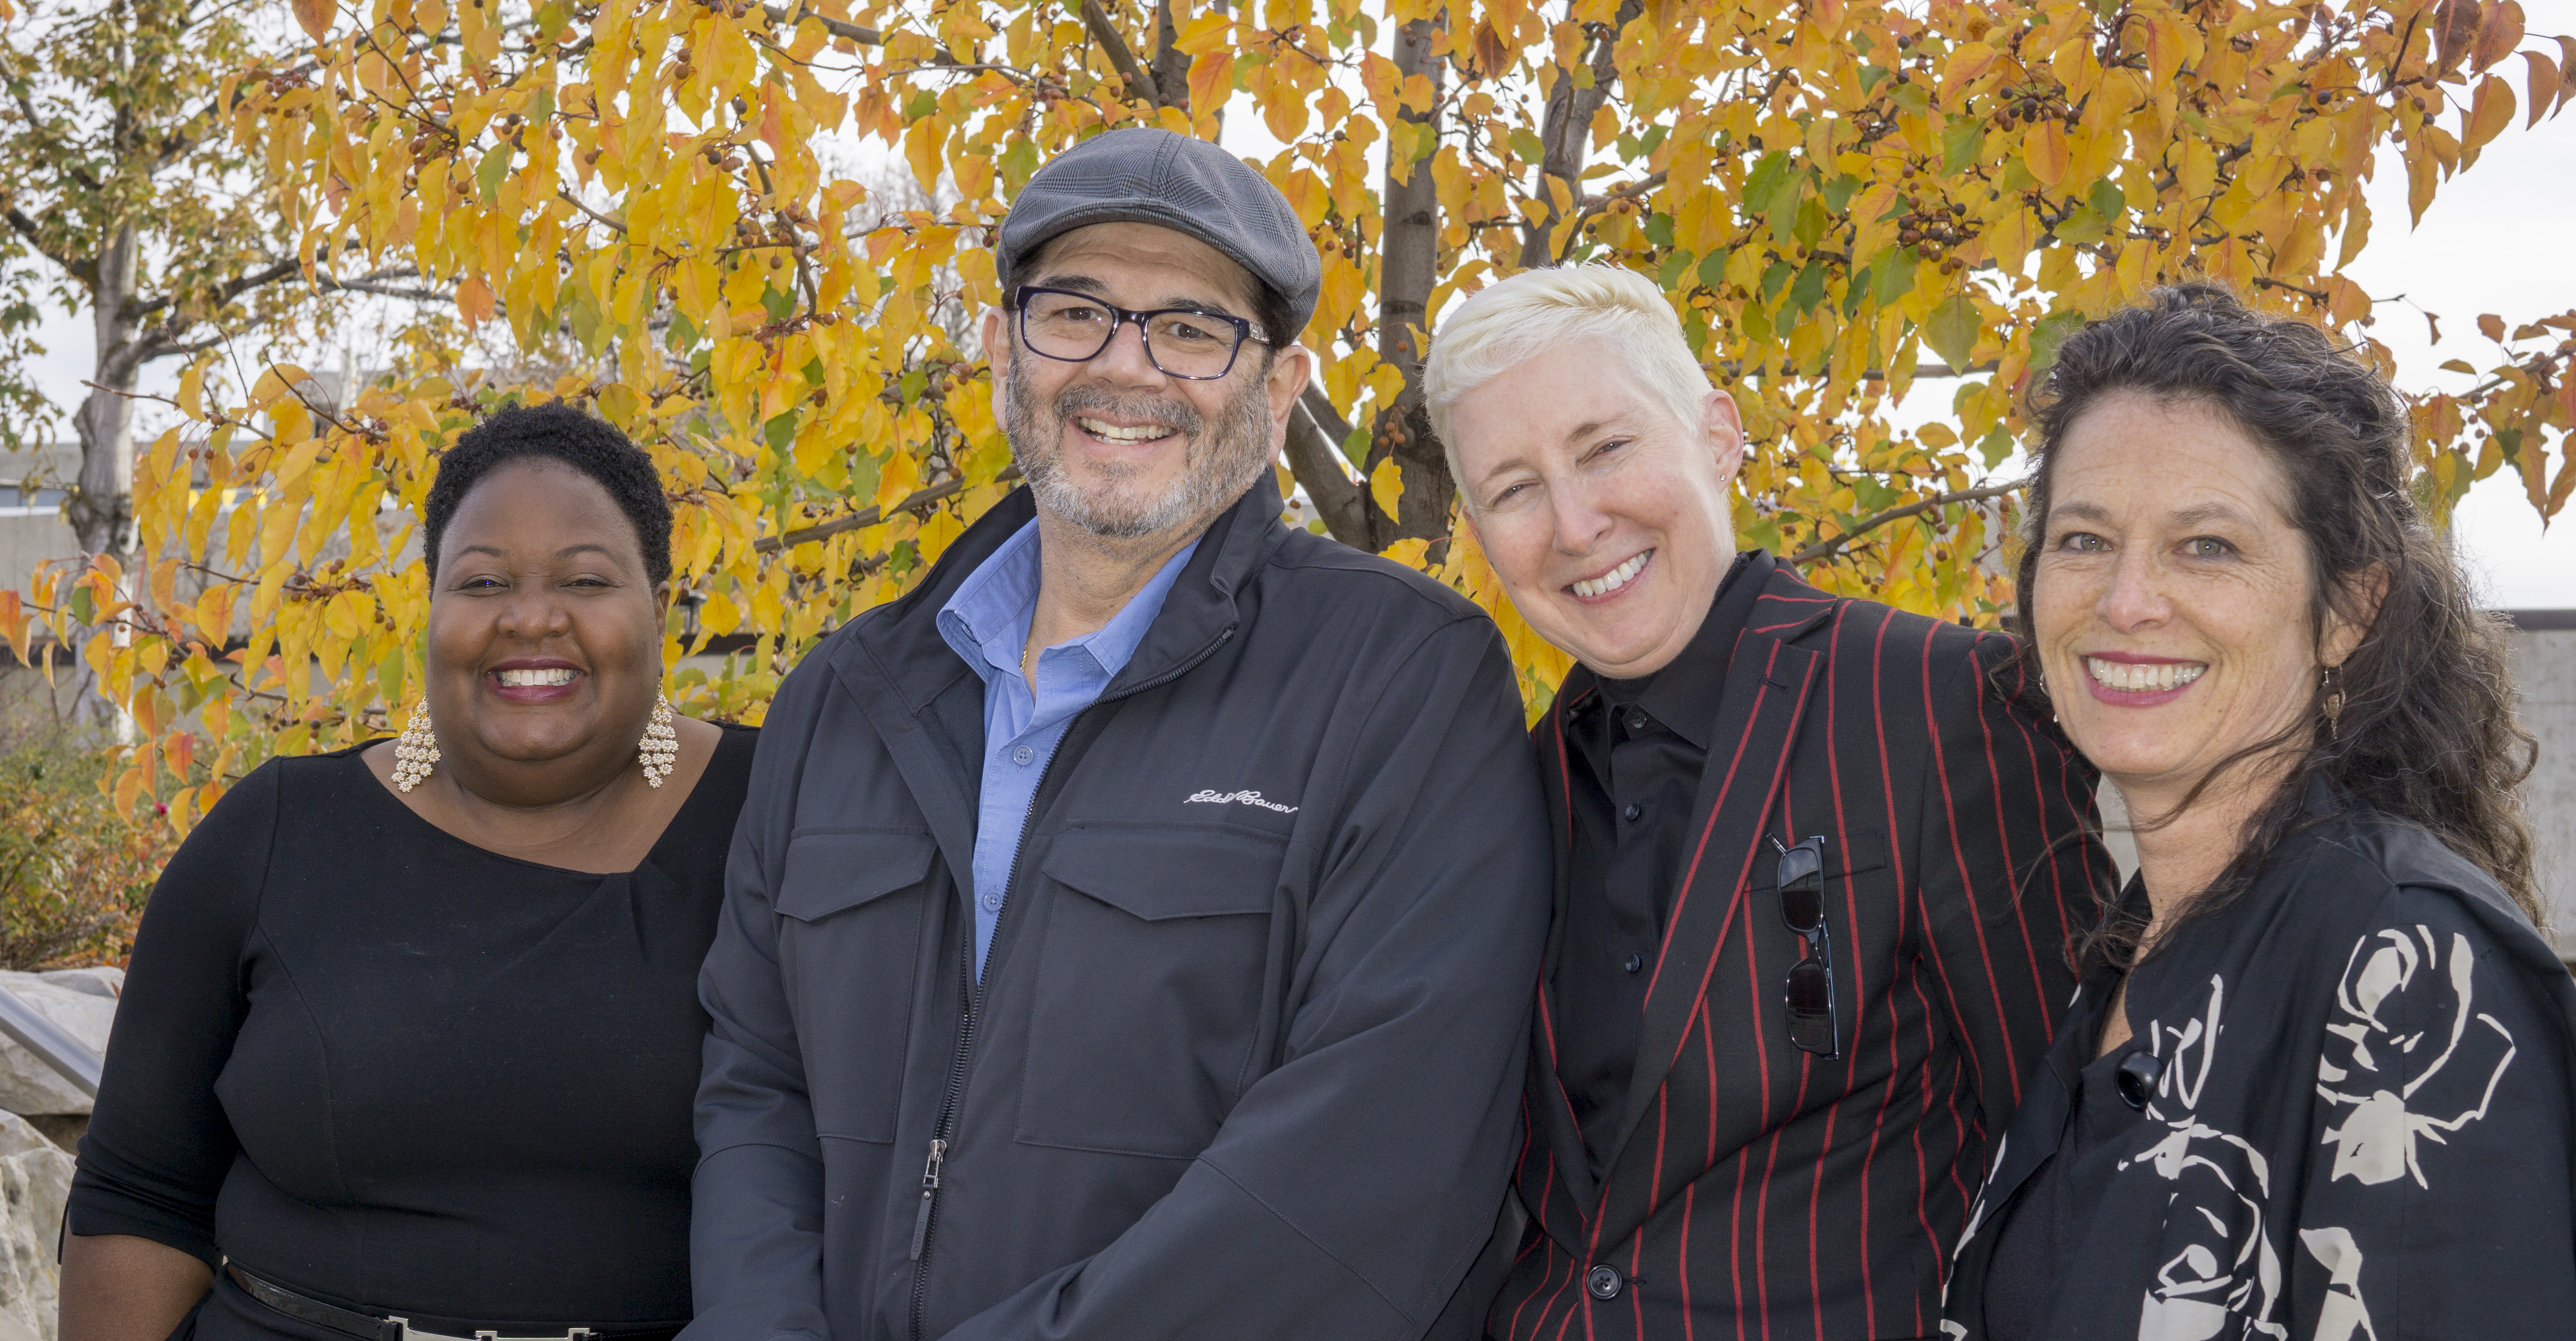 Leadership team for the School of Cultural and Social Transformation (from left: Nicole Robinson, Ed Munoz, Kathryn Bond Stockton, Susie Porter).